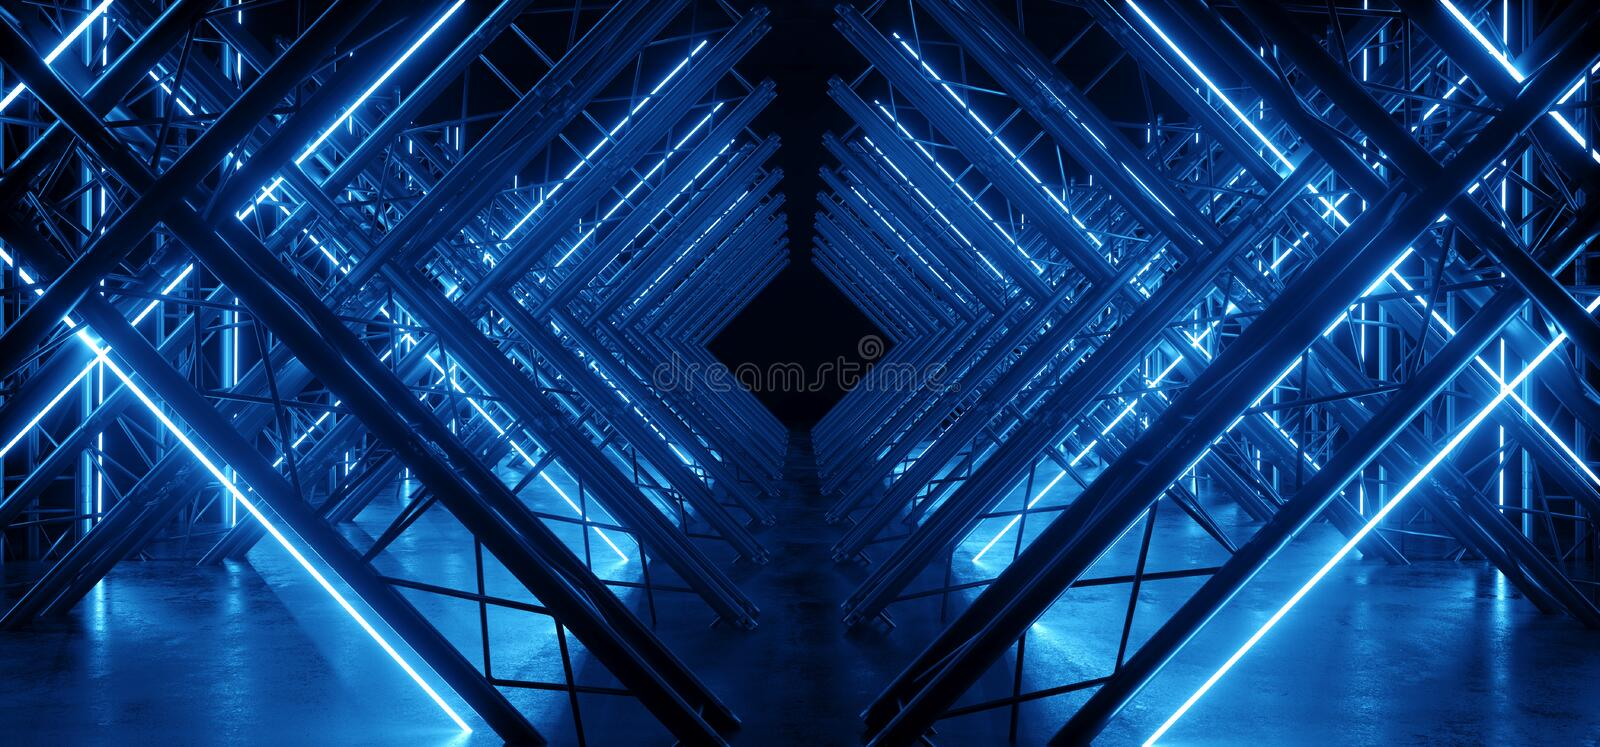 Neon Glowing Blue Vibrant Sci Fi Futuristic Stage Podium Construction Metal Triangle Concrete Grunge Reflective Dark Night Virtual. Show Background Laser Tunnel royalty free illustration